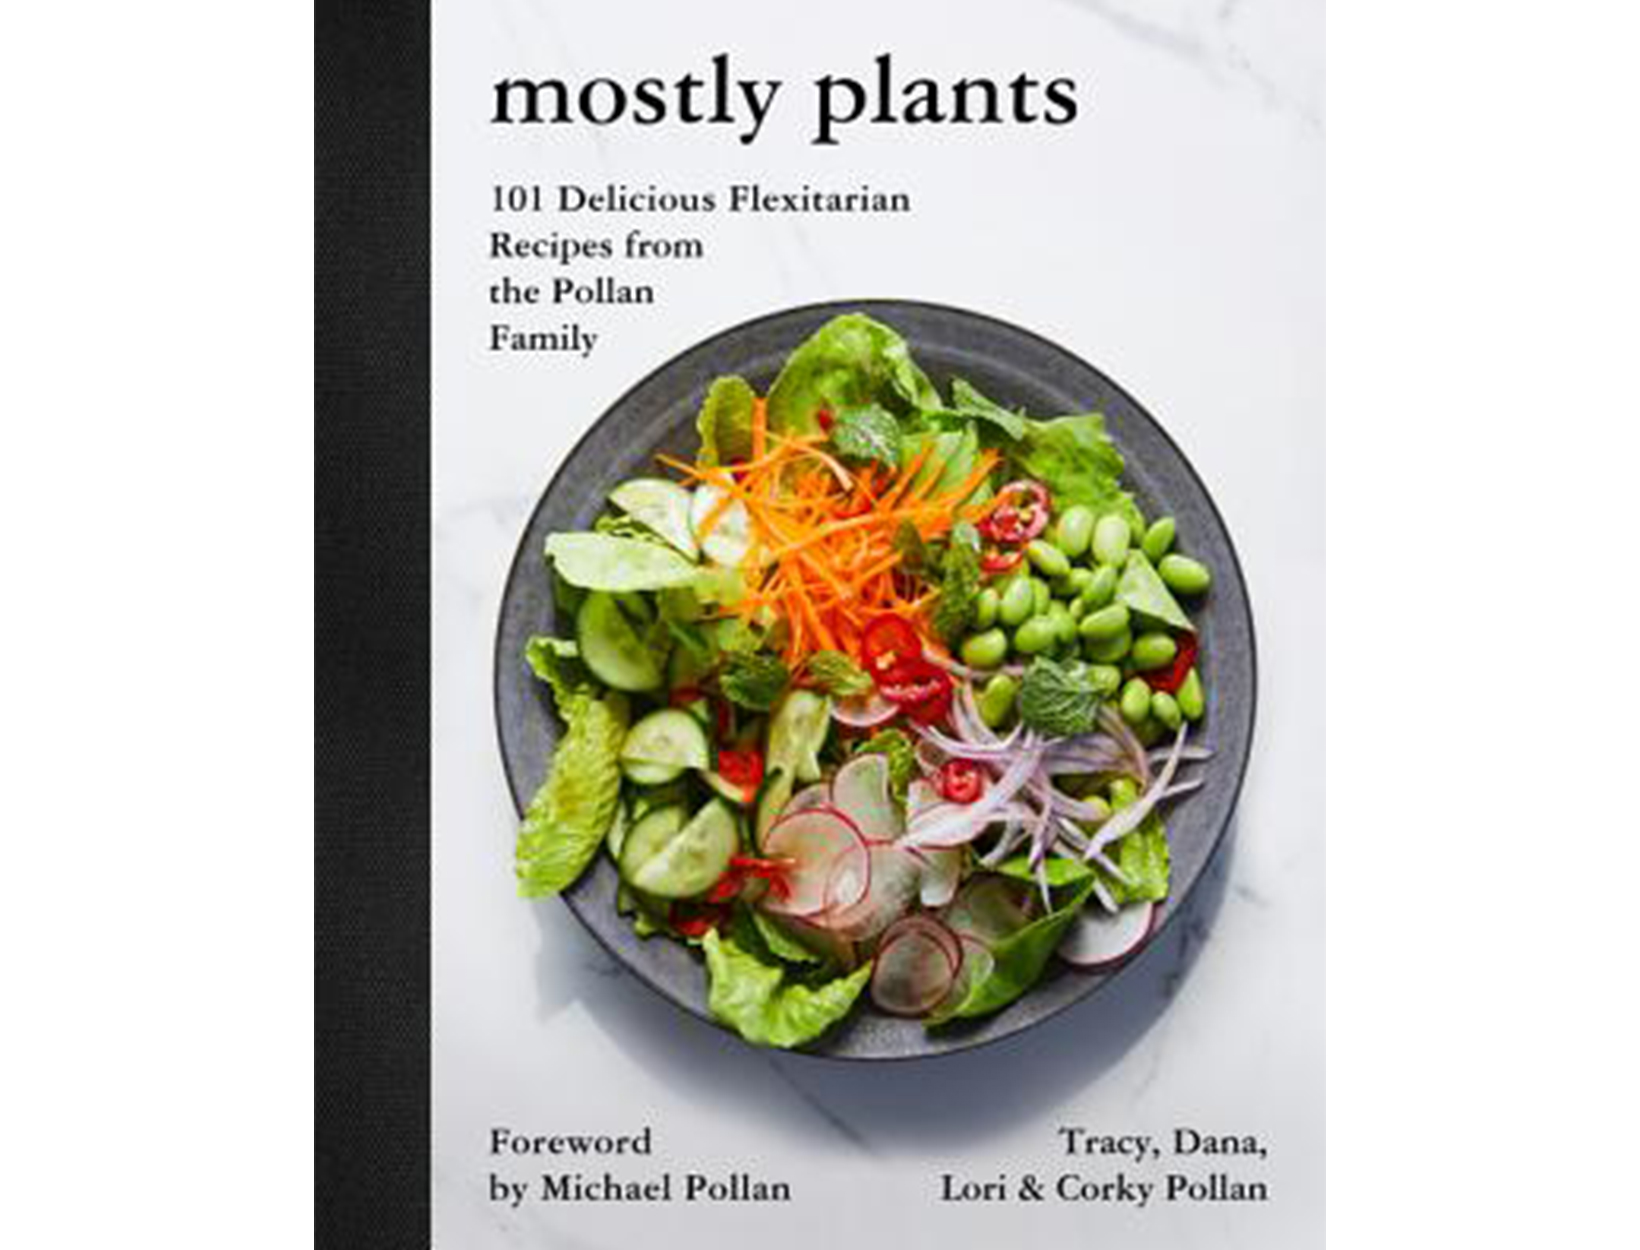 <em>Mostly Plants</em> by The Pollan Family